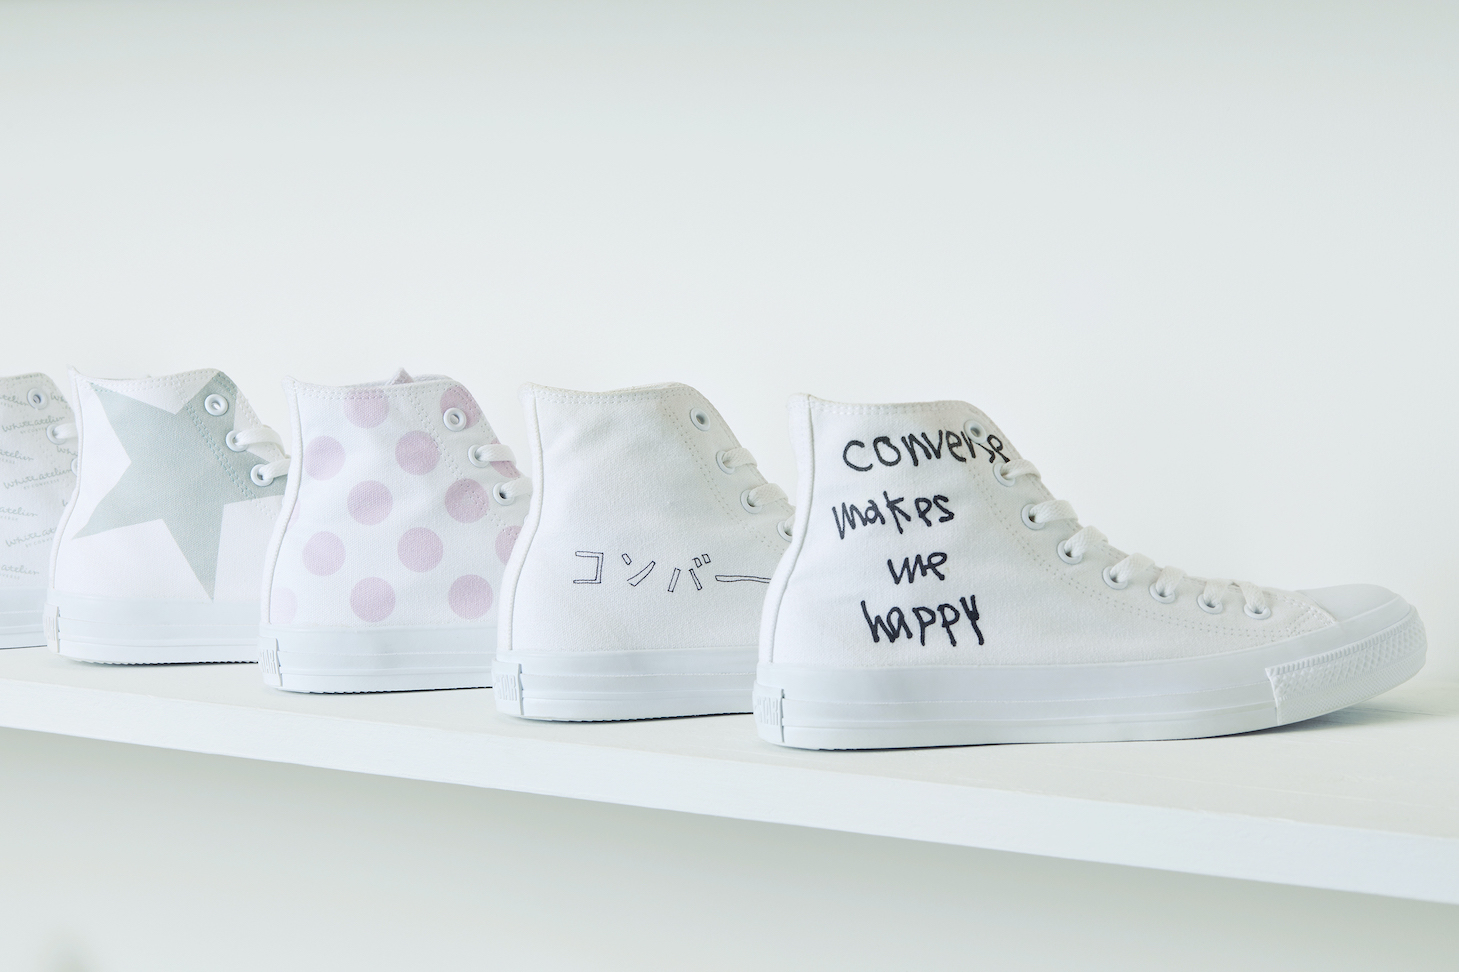 White atelier BY CONVERSEプリントカスタマイズキャンペーン開催